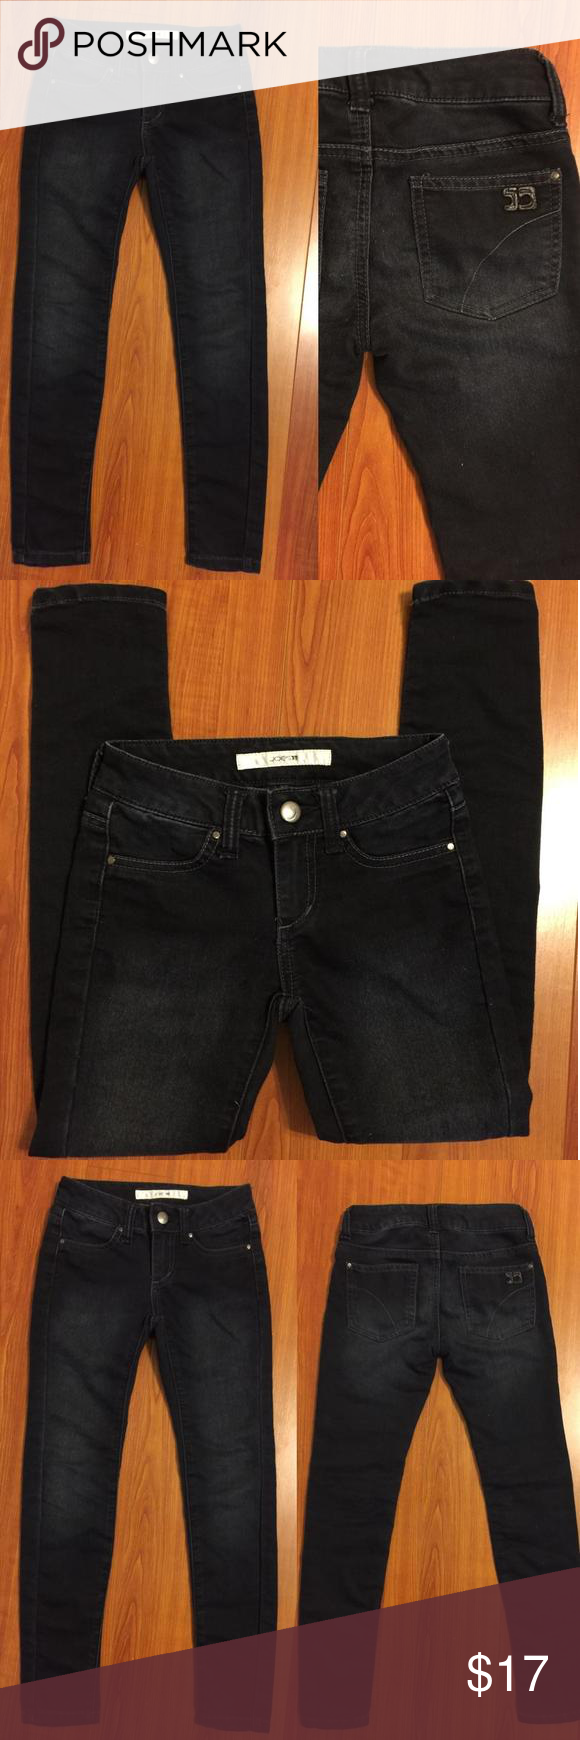 🆕Joe's Jeans Piper Ever Blue Size 7 👖 New without tags! Joe's Jeans. Size 7. Style, Piper. Color, Ever Blue. 64% Cotton 30% Polyester 2% Spandex. Super Soft and Lightweight Denim Jeans for comfort!! Zip fly Joe's Jeans Dresses